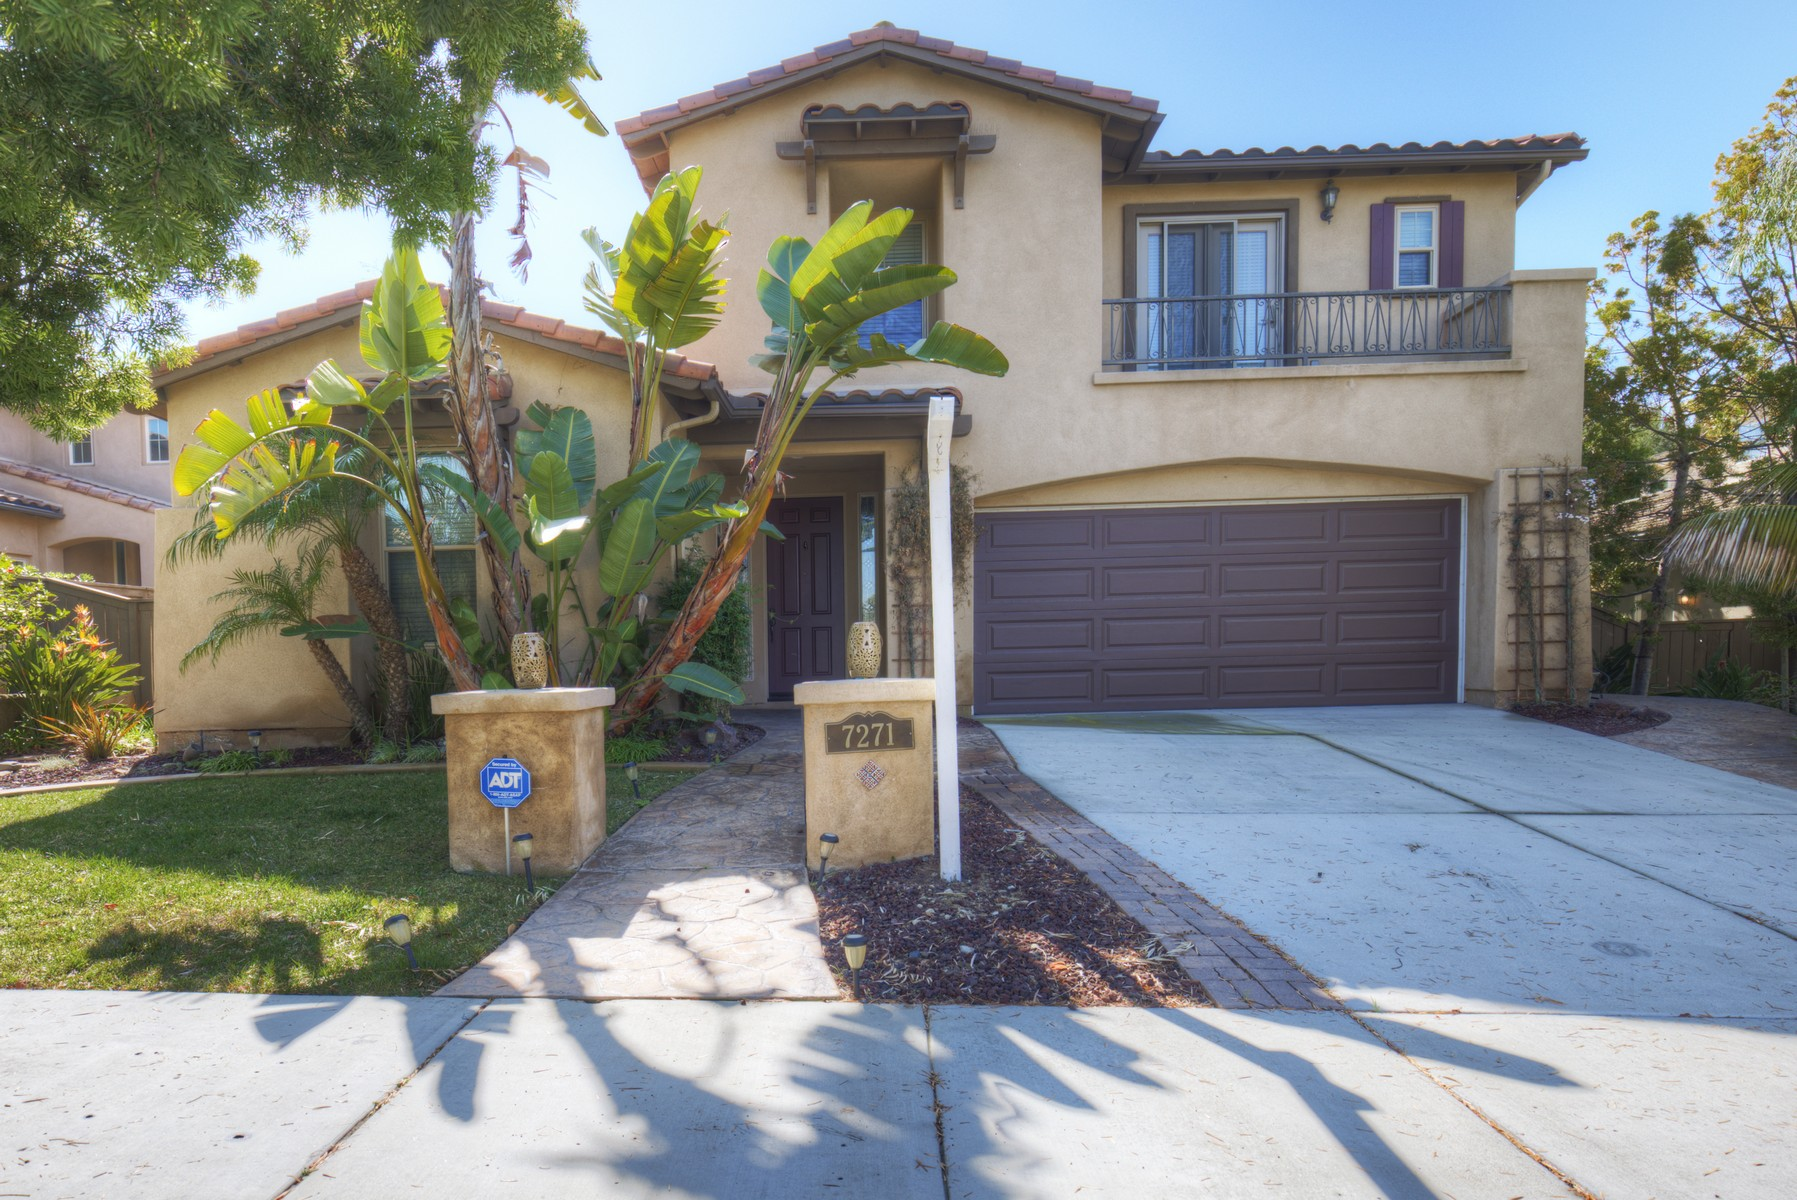 Single Family Home for Sale at 7271 Primrose Lane San Diego, California 92129 United States